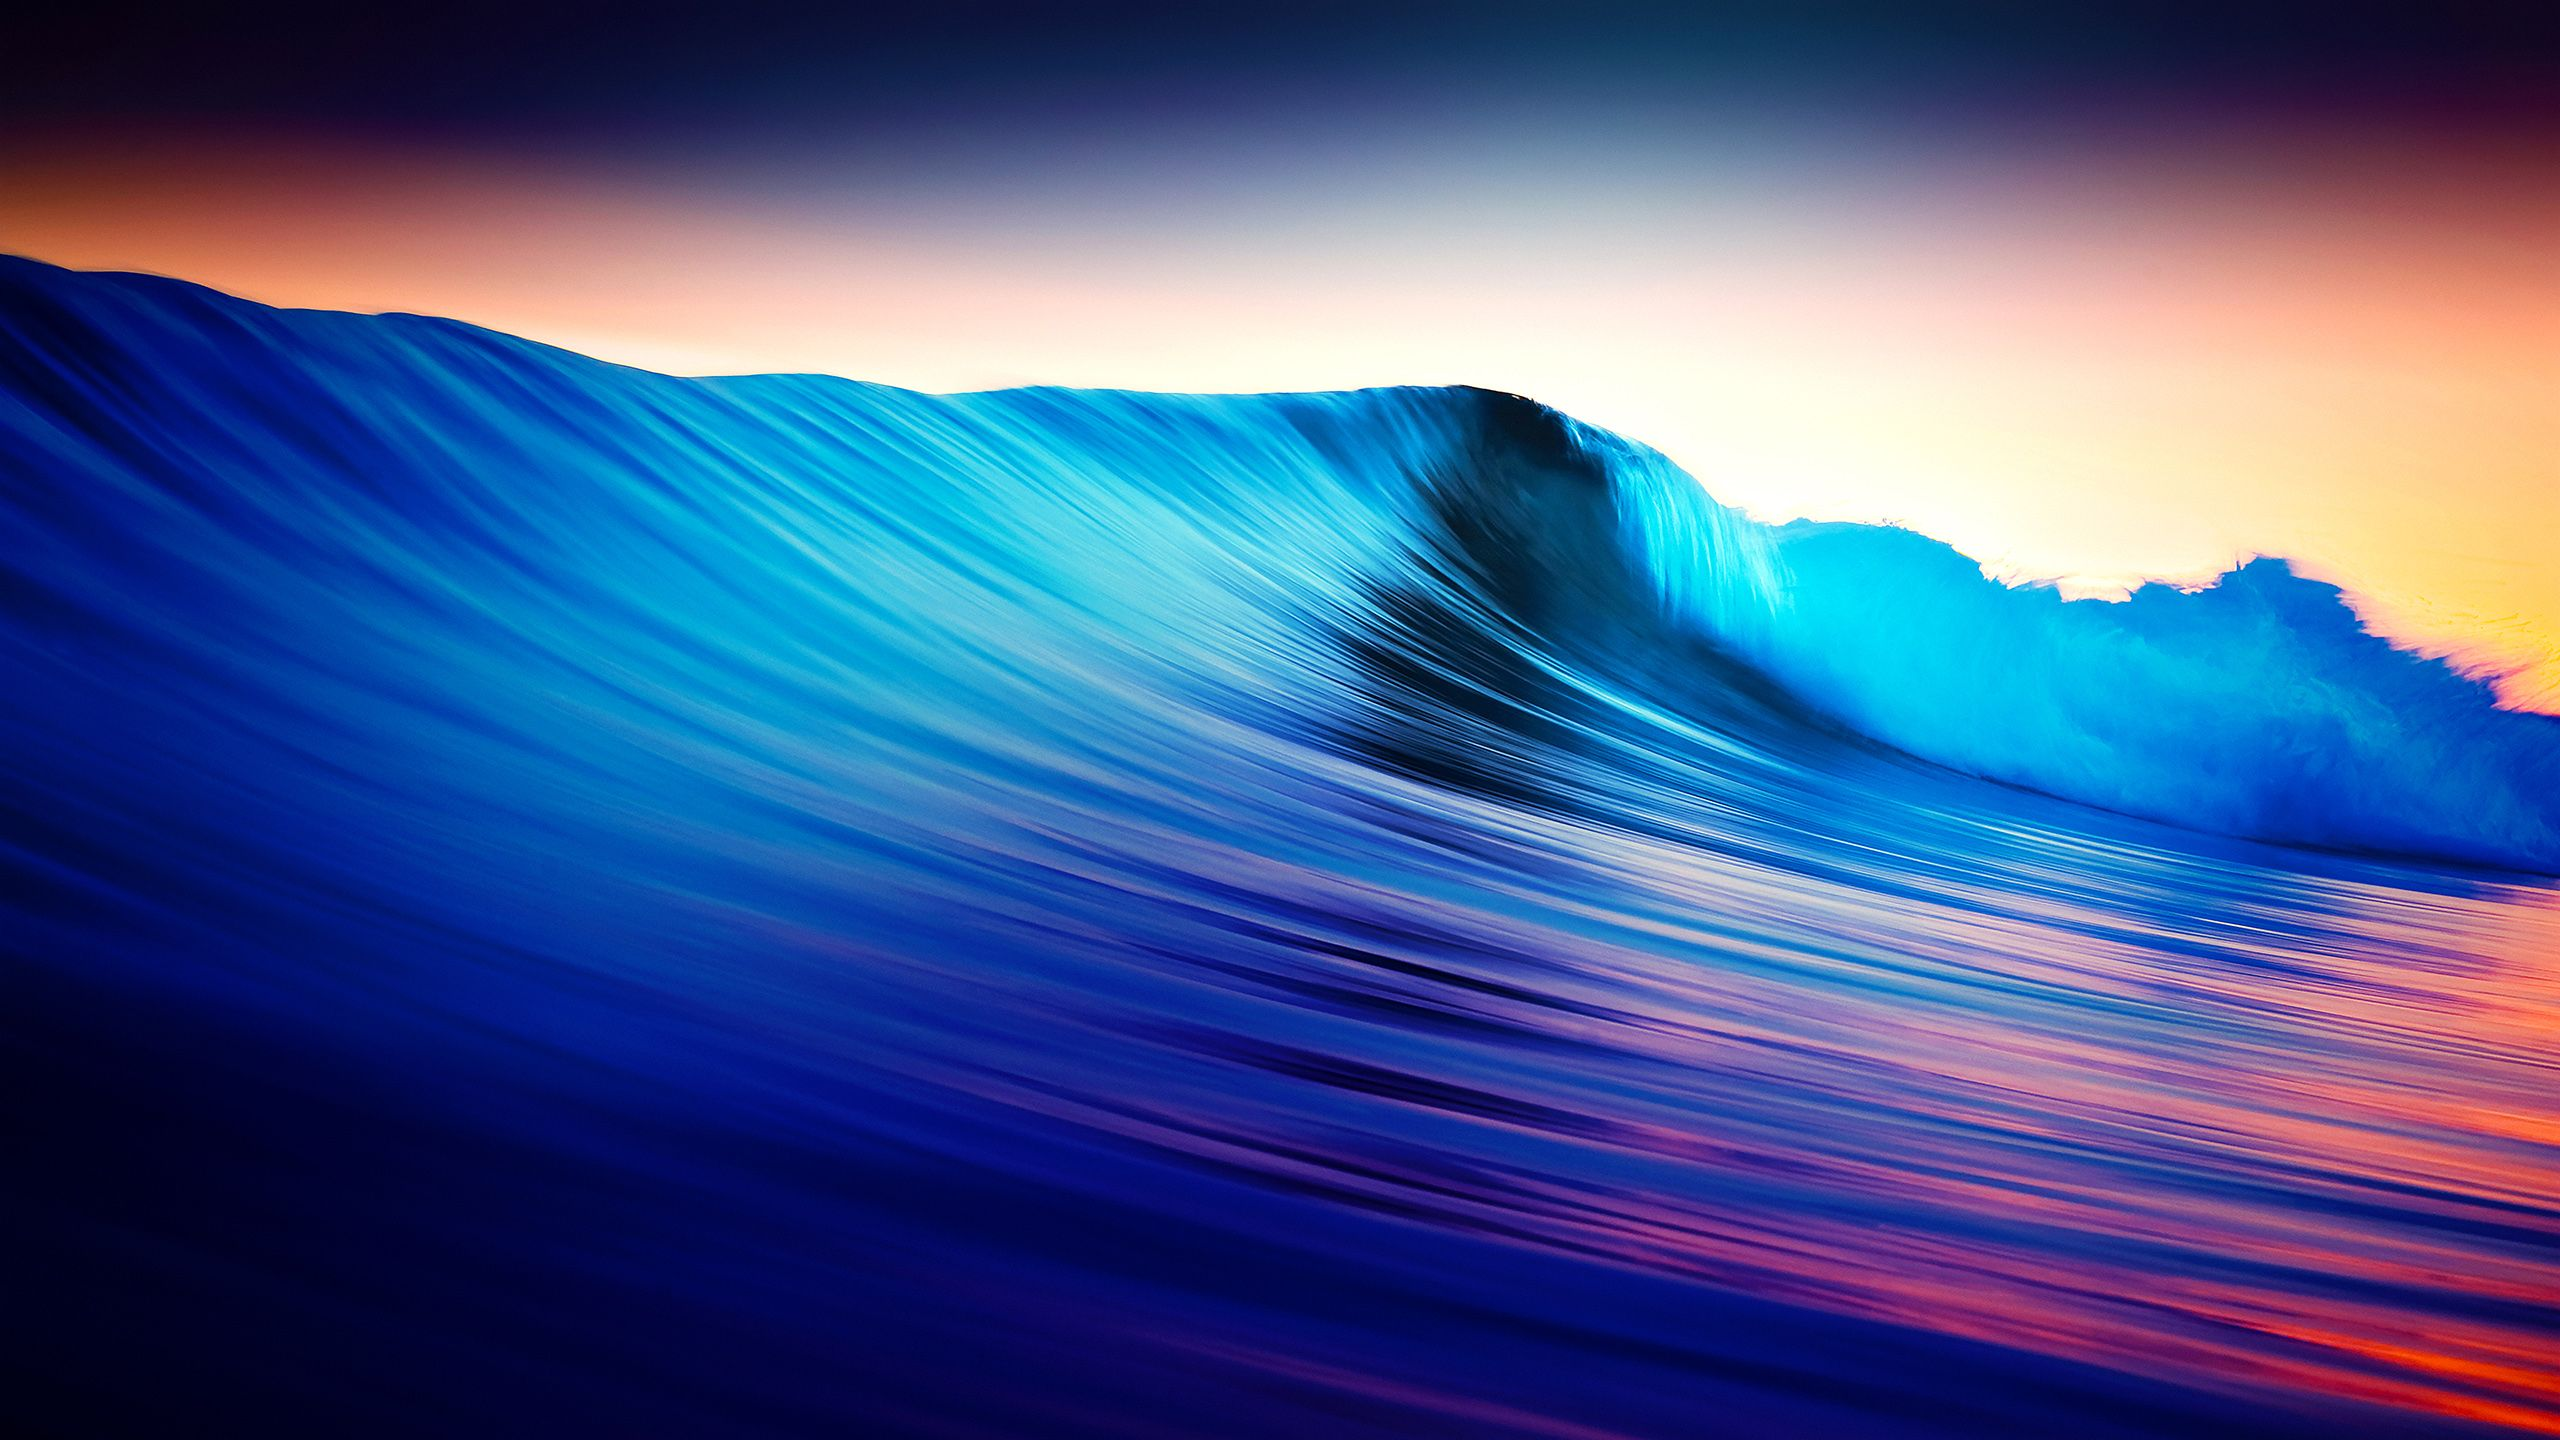 Rolling Waves wallpapers Waves wallpaper, Nature